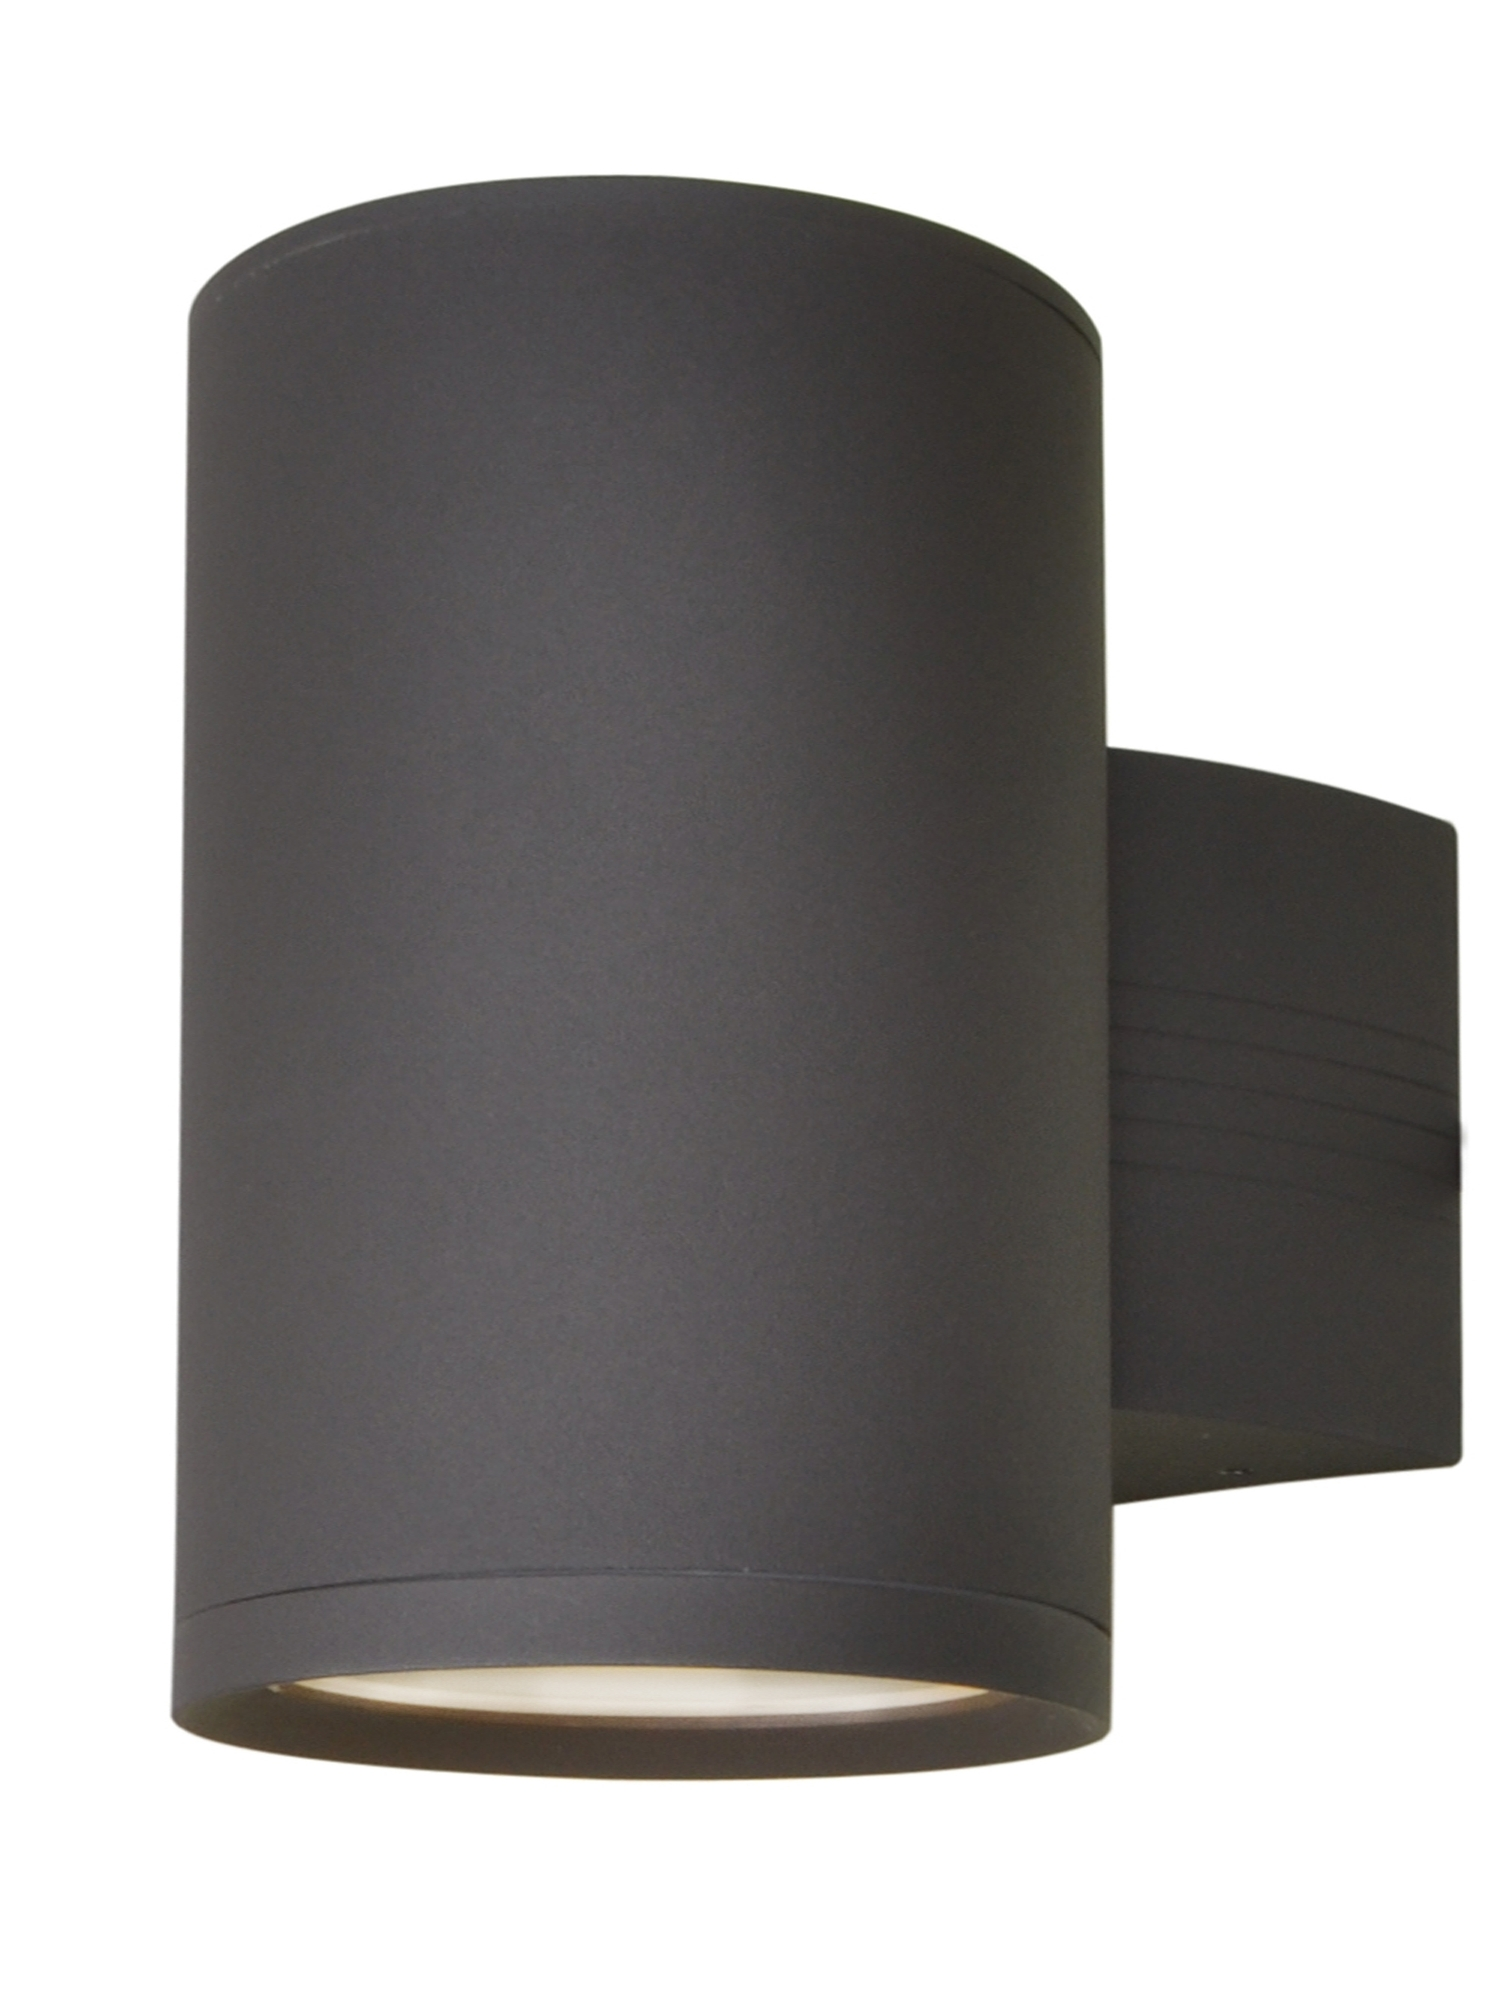 6101Abz Pertaining To Sconce Outdoor Wall Lighting (View 1 of 20)